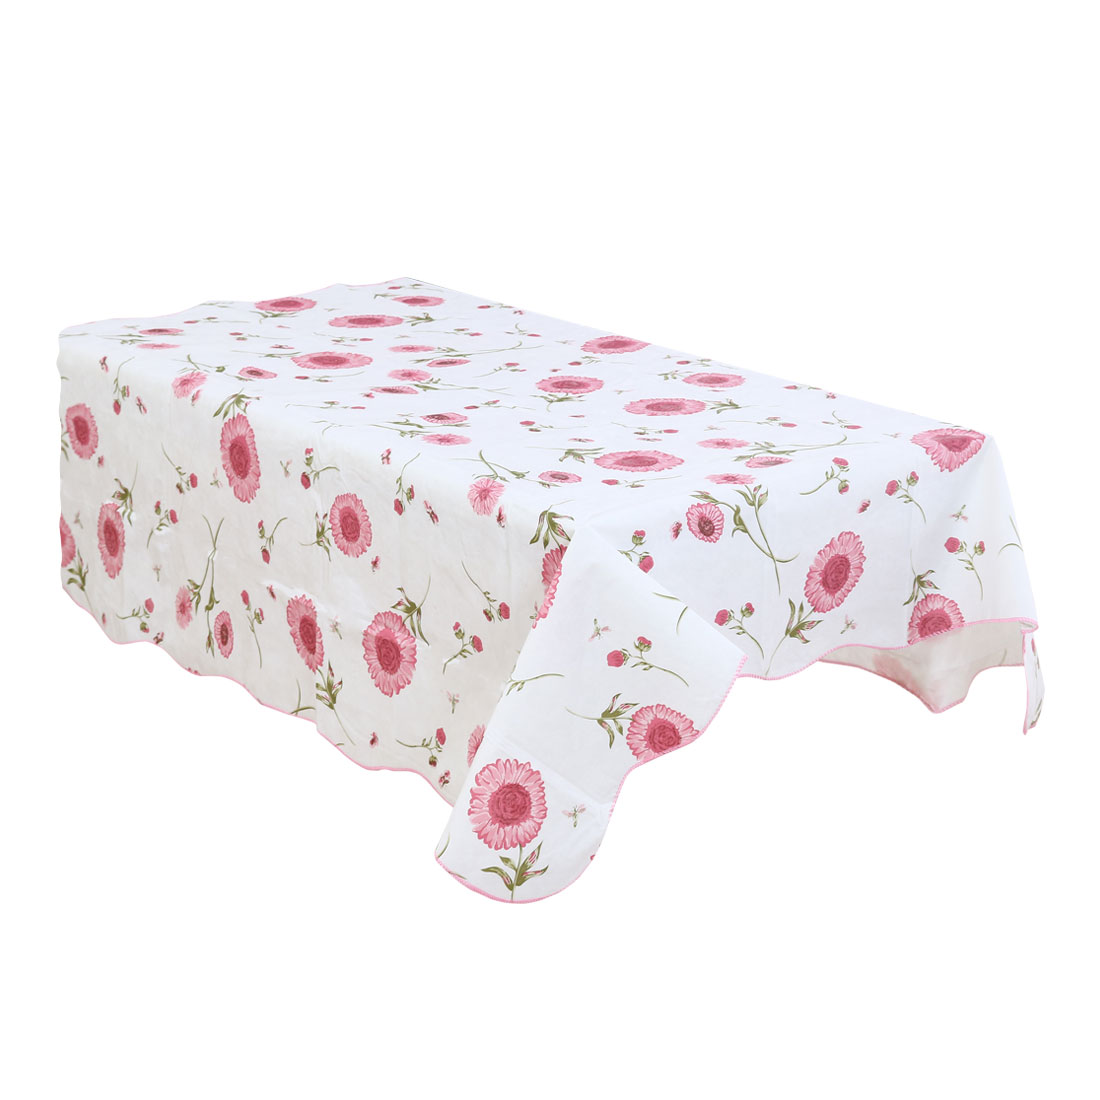 Home Picnics Sunflower Pattern Water Resistant Oil-proof Tablecloth Table Cloth Cover Pink 60 x 60 Inch